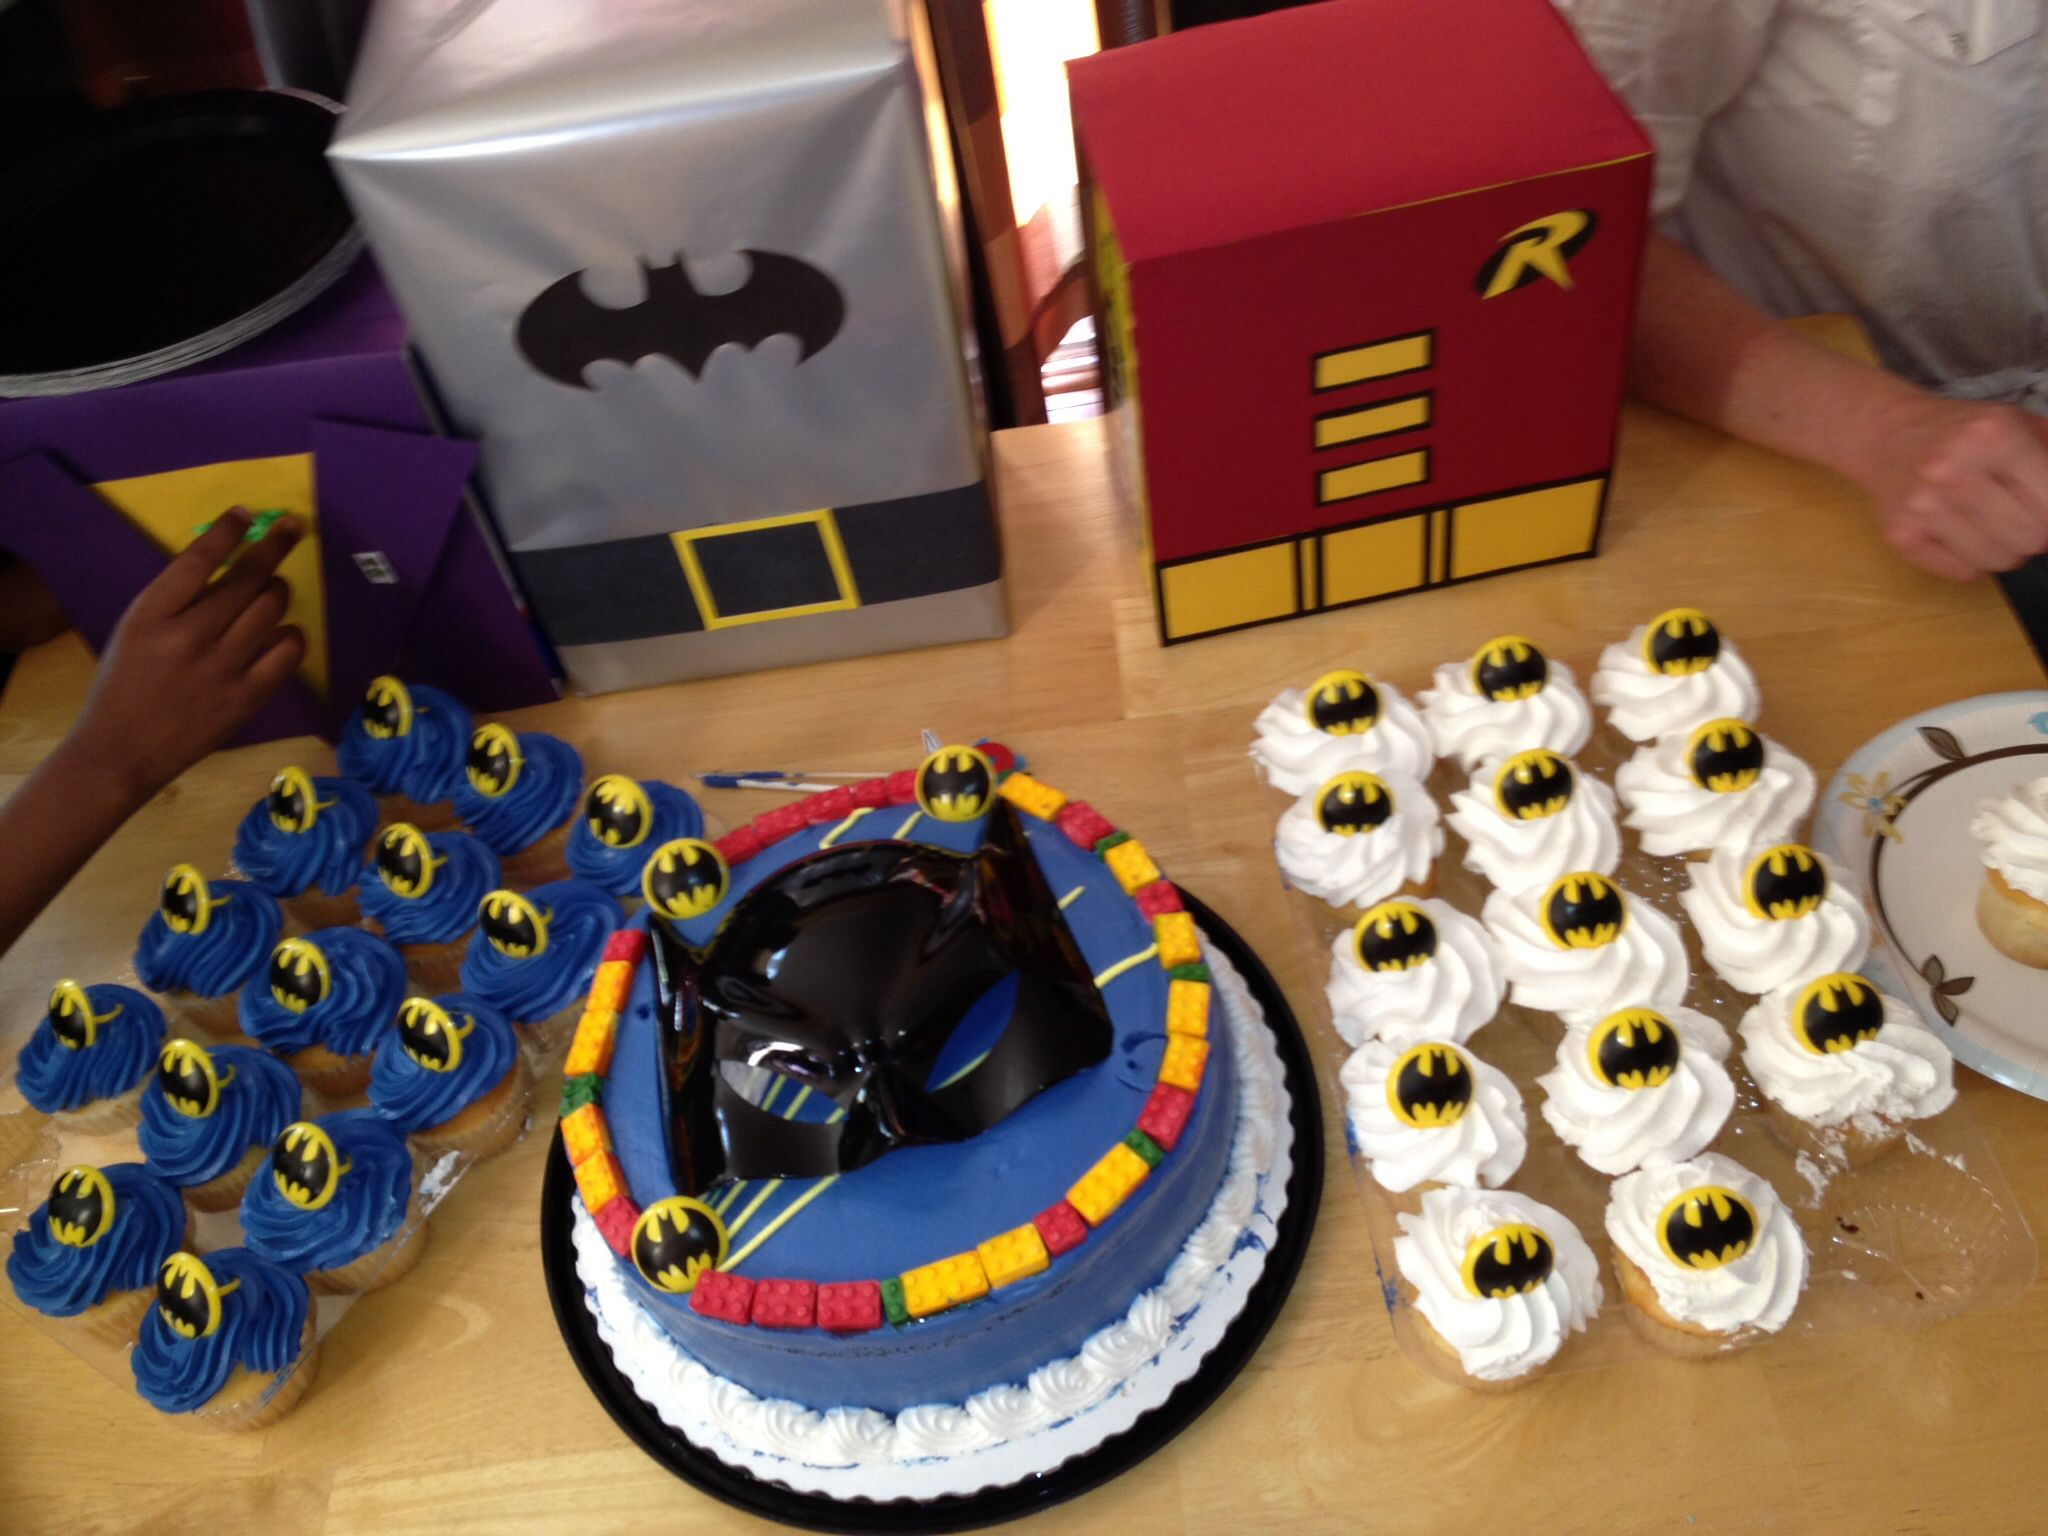 Astonishing Cupcakes And Cake From Sams Club Added The Lego Candy Border To Personalised Birthday Cards Paralily Jamesorg